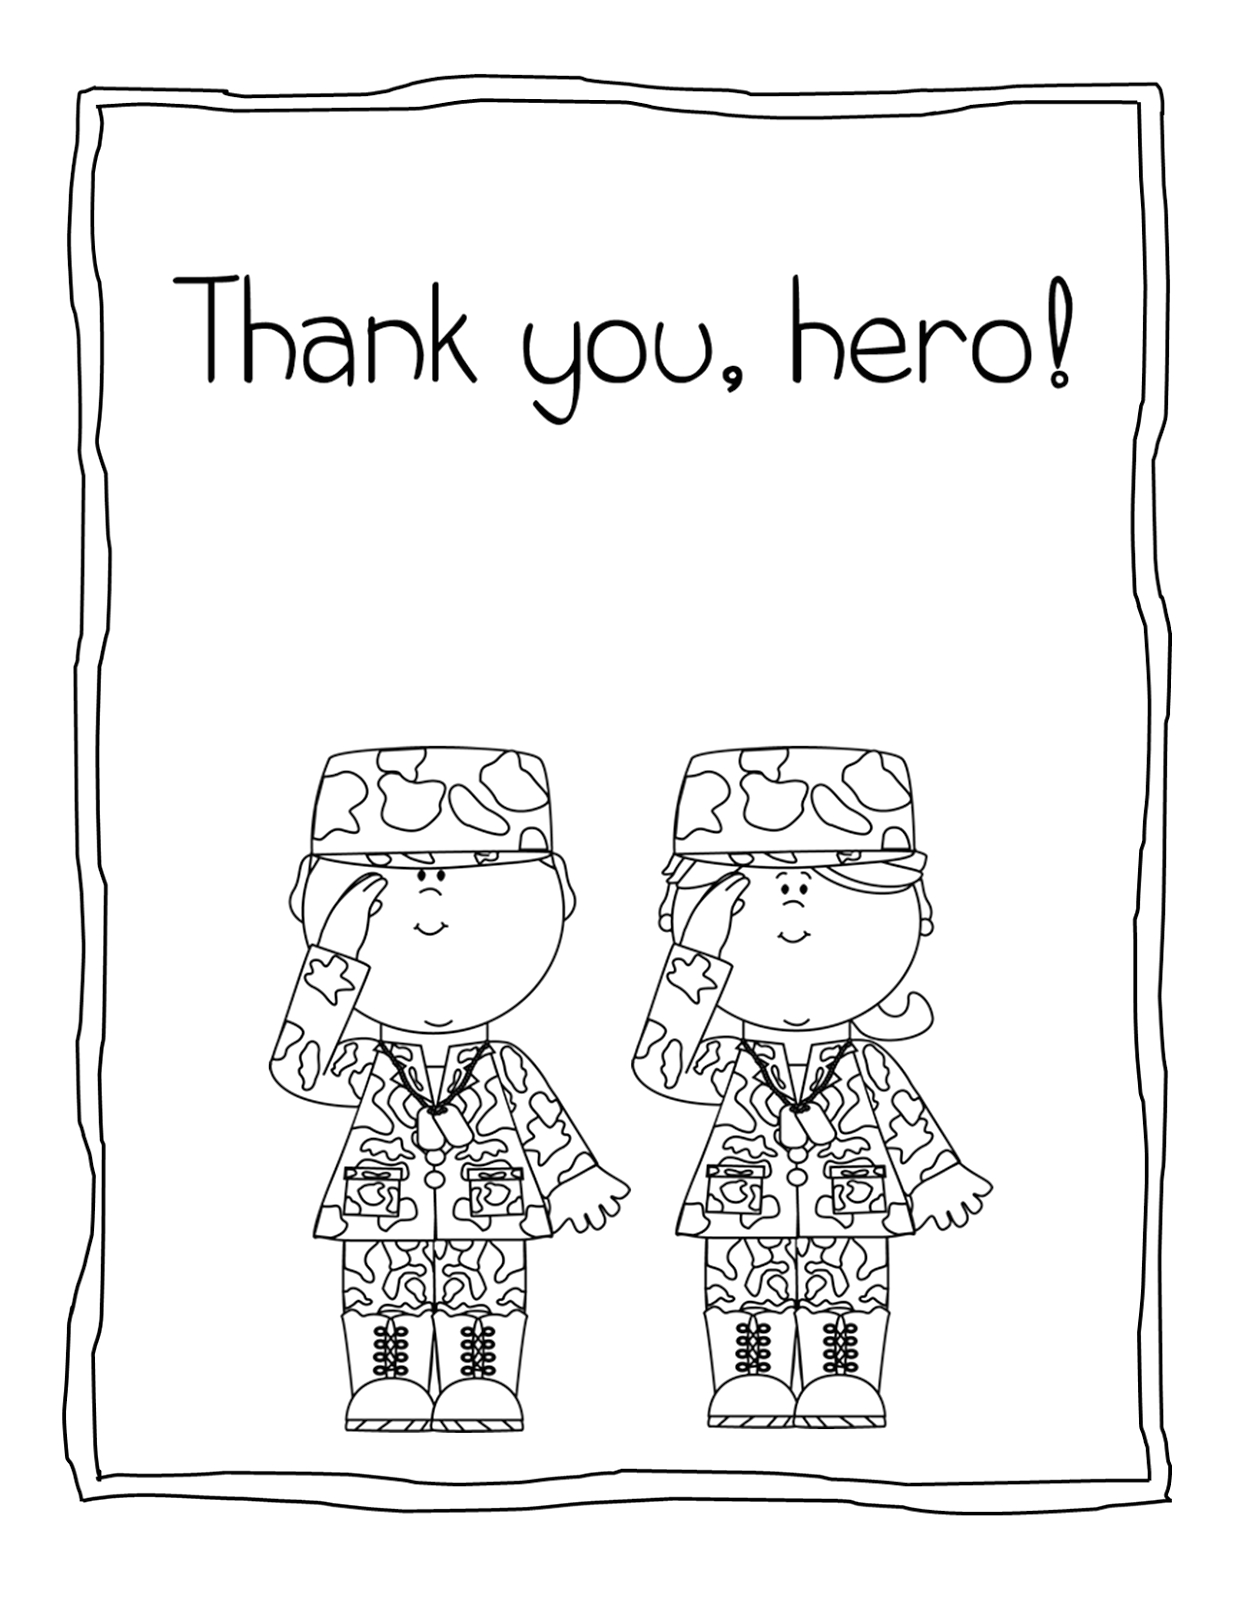 Free Veterans Day Coloring Pages for Kids Veterans Day Coloring Pages 2019 Printable